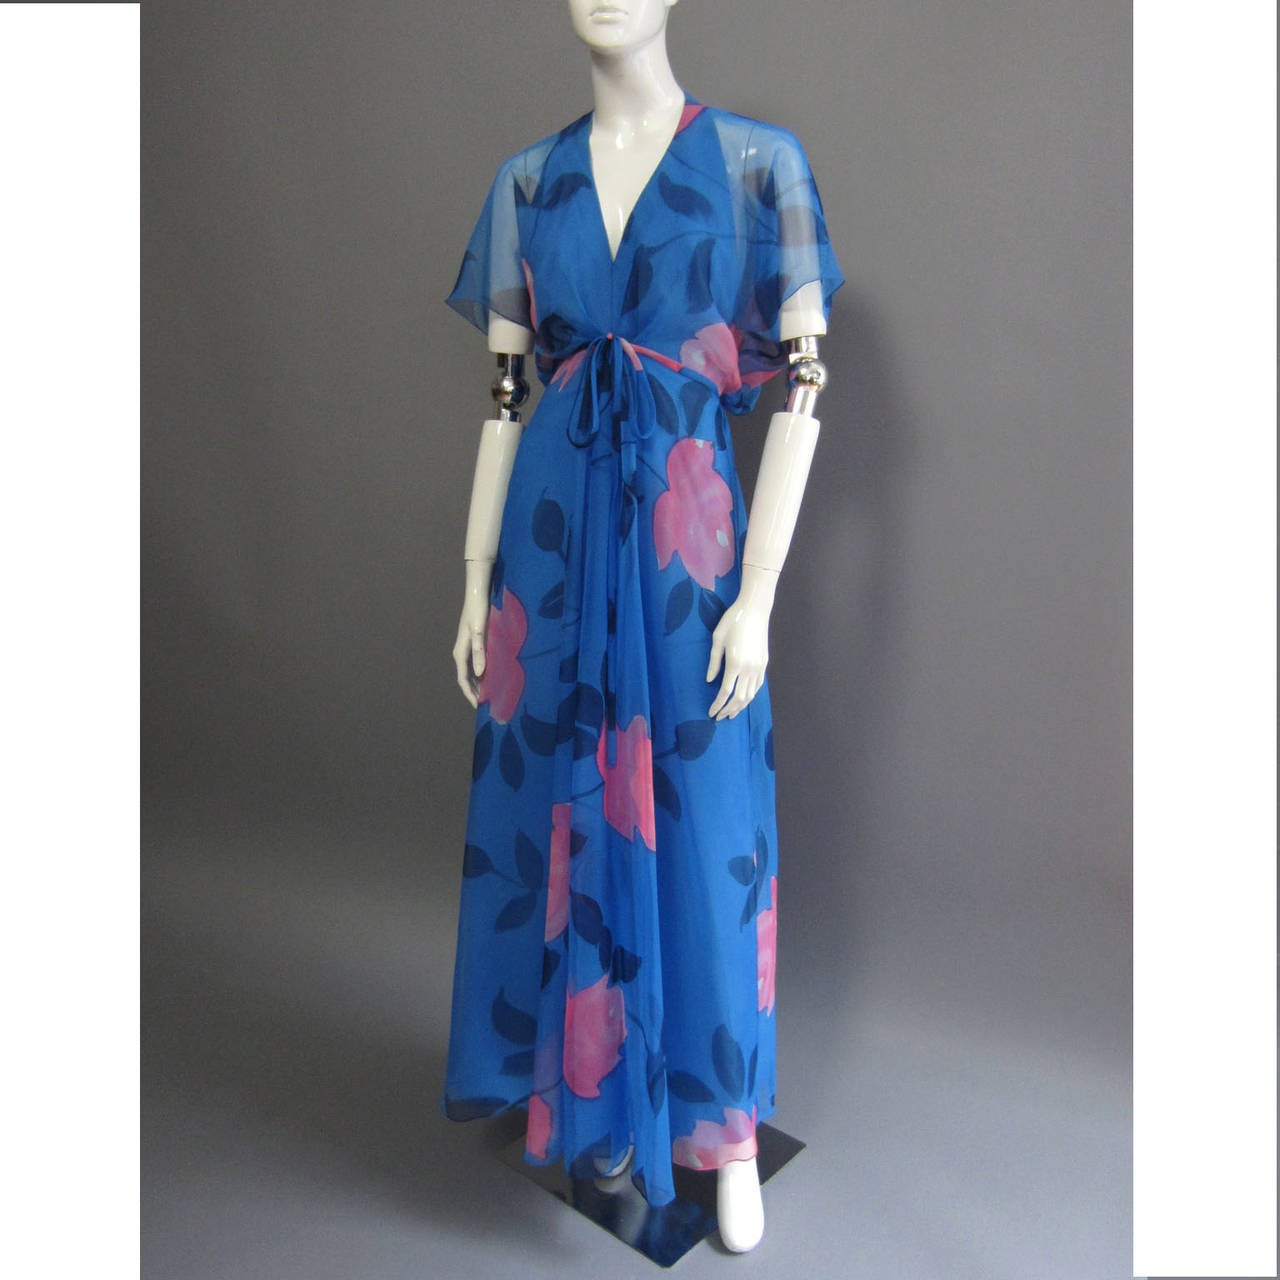 1970s ESTEVEZ Floral Print Maxi Dress 2